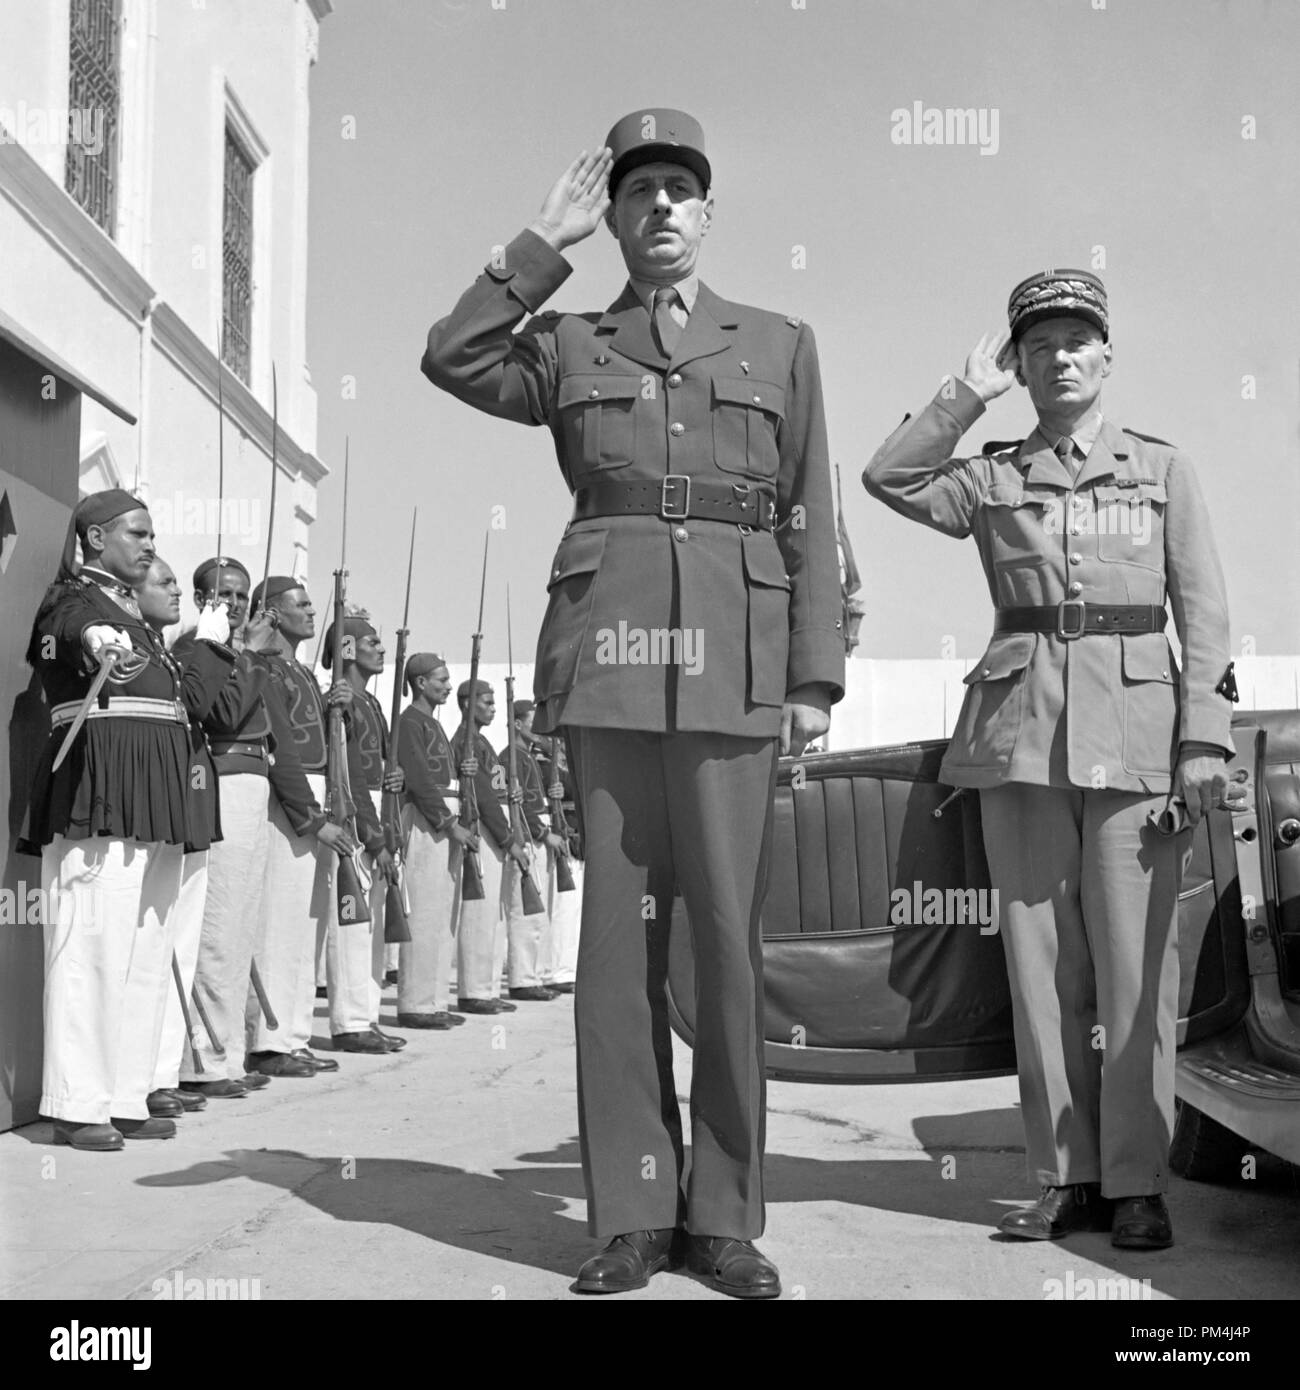 General de Gaulle, accompanied by General Mast, saluting as the band plays Marseillaise outside the summer palace of the bay of Tunis. June 1943   File Reference # 1003_521THA - Stock Image